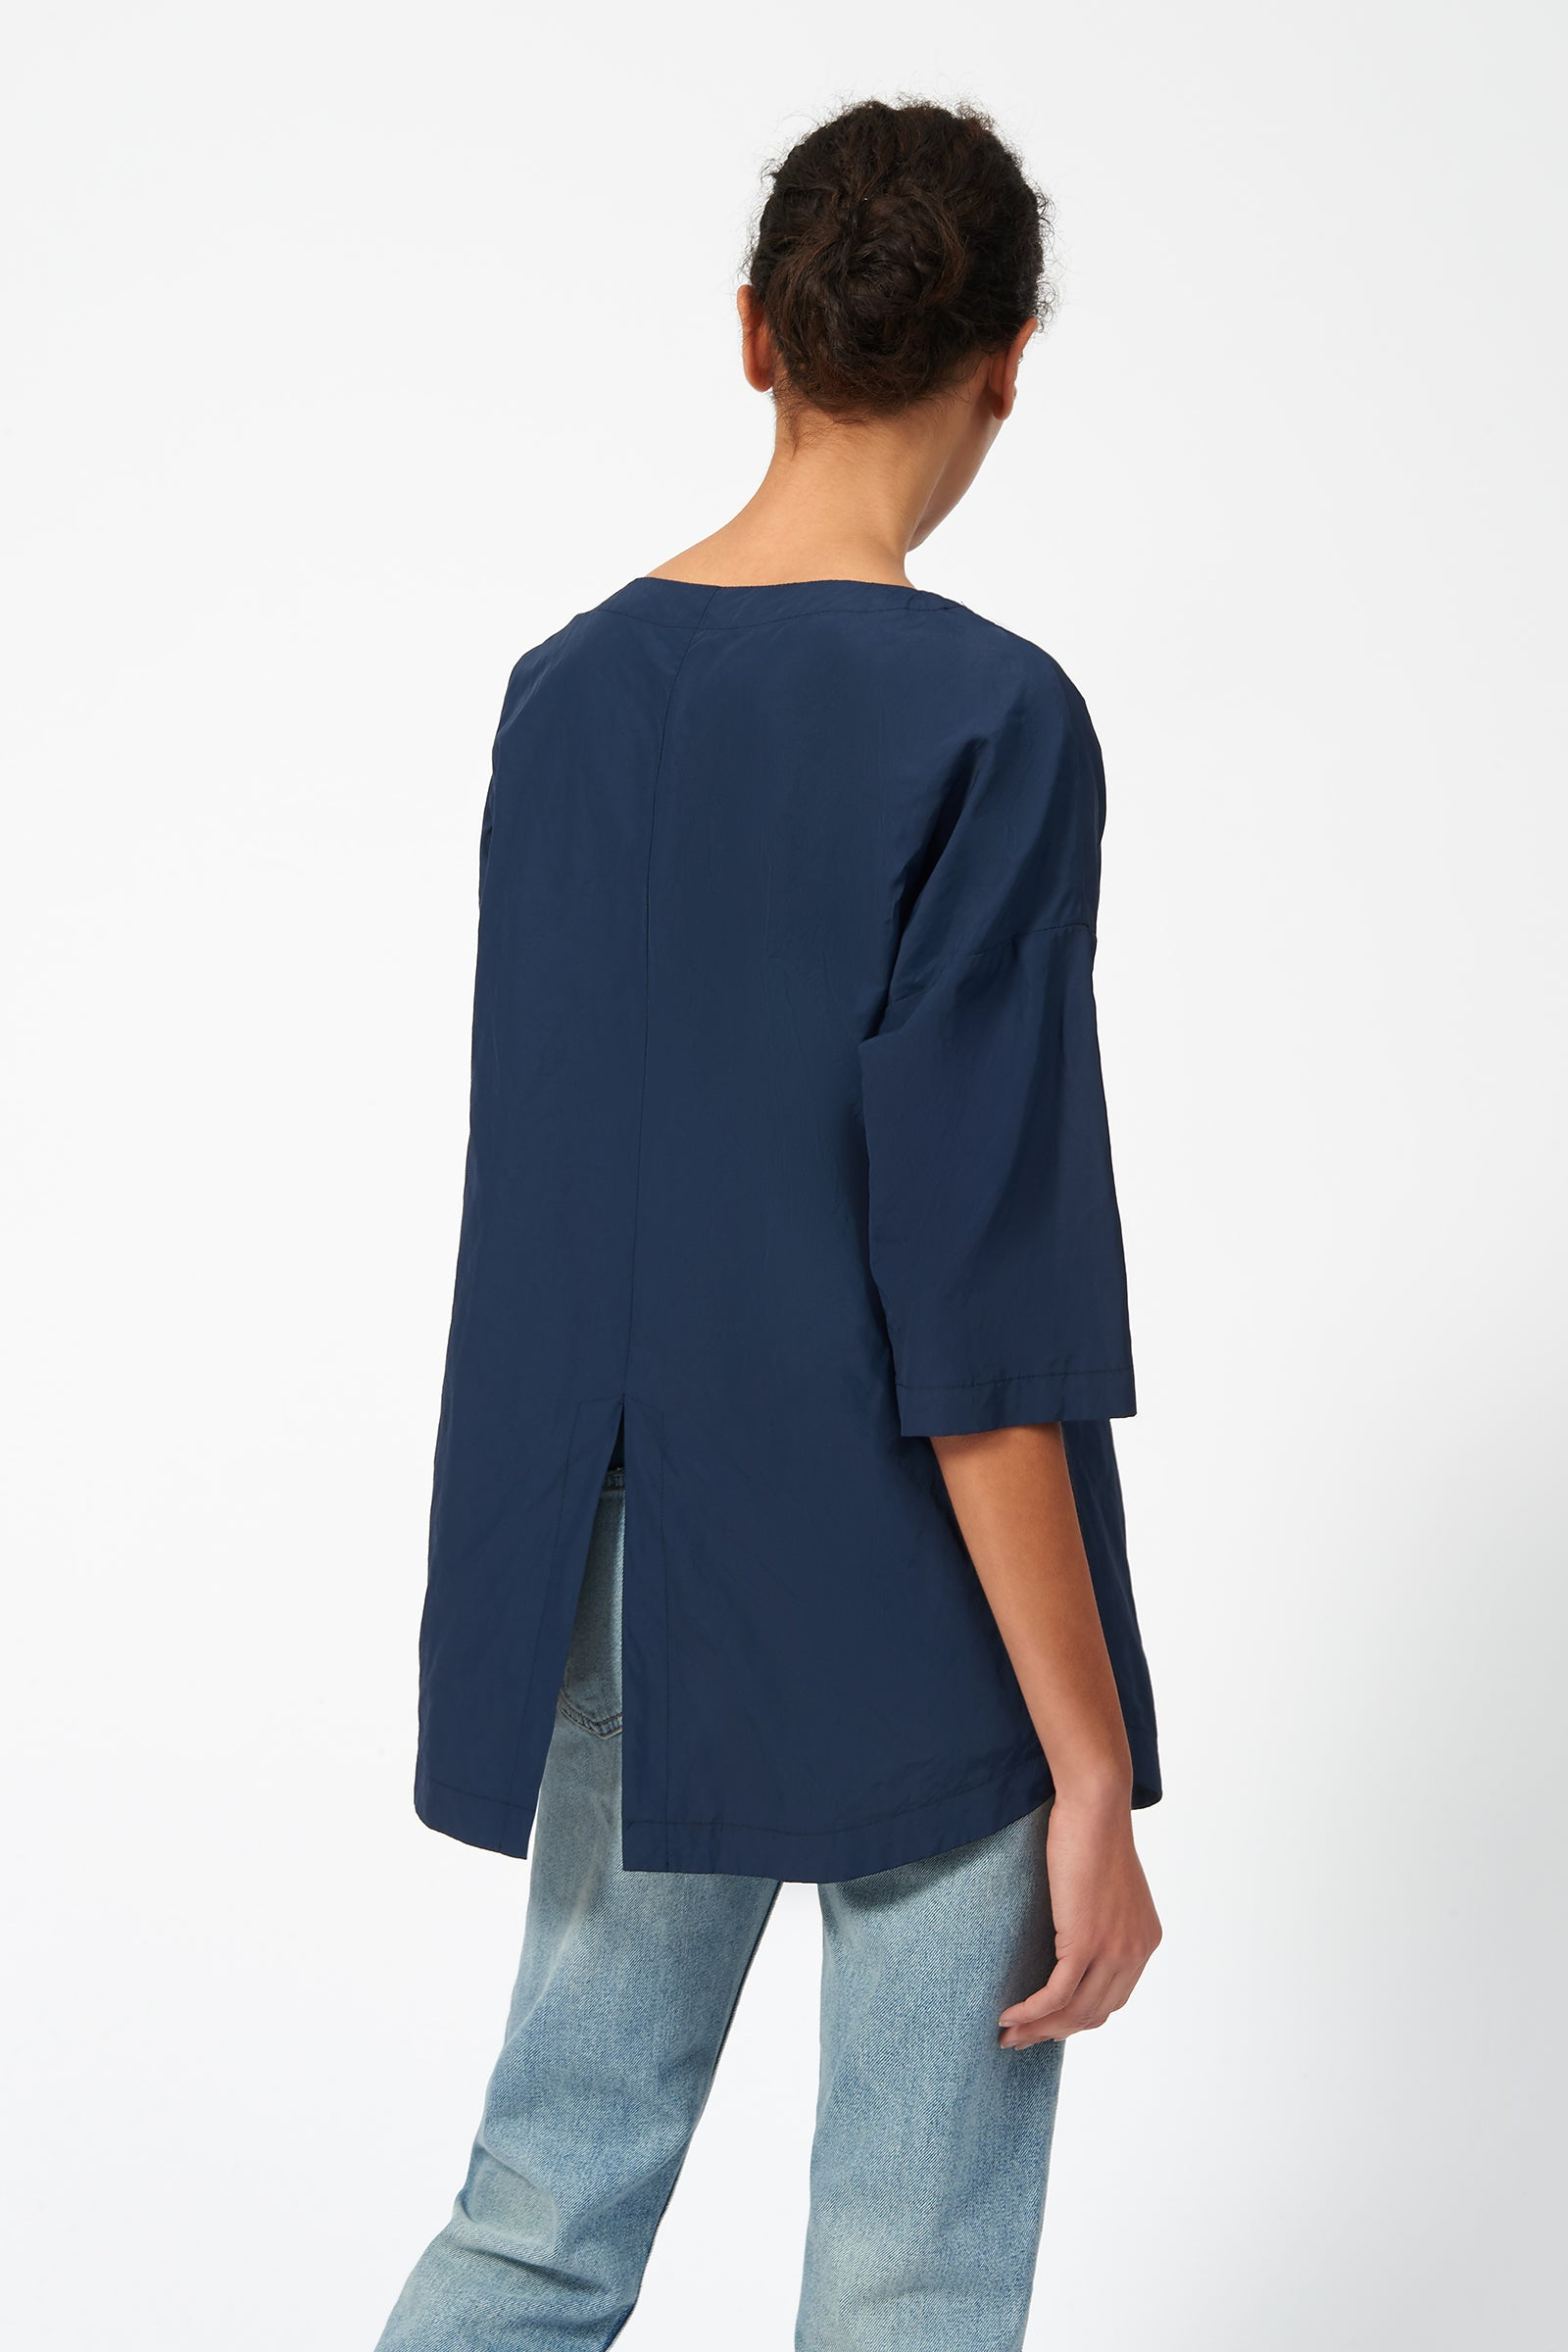 Kal Rieman Cinch Front Pullover in Navy on Model Back View